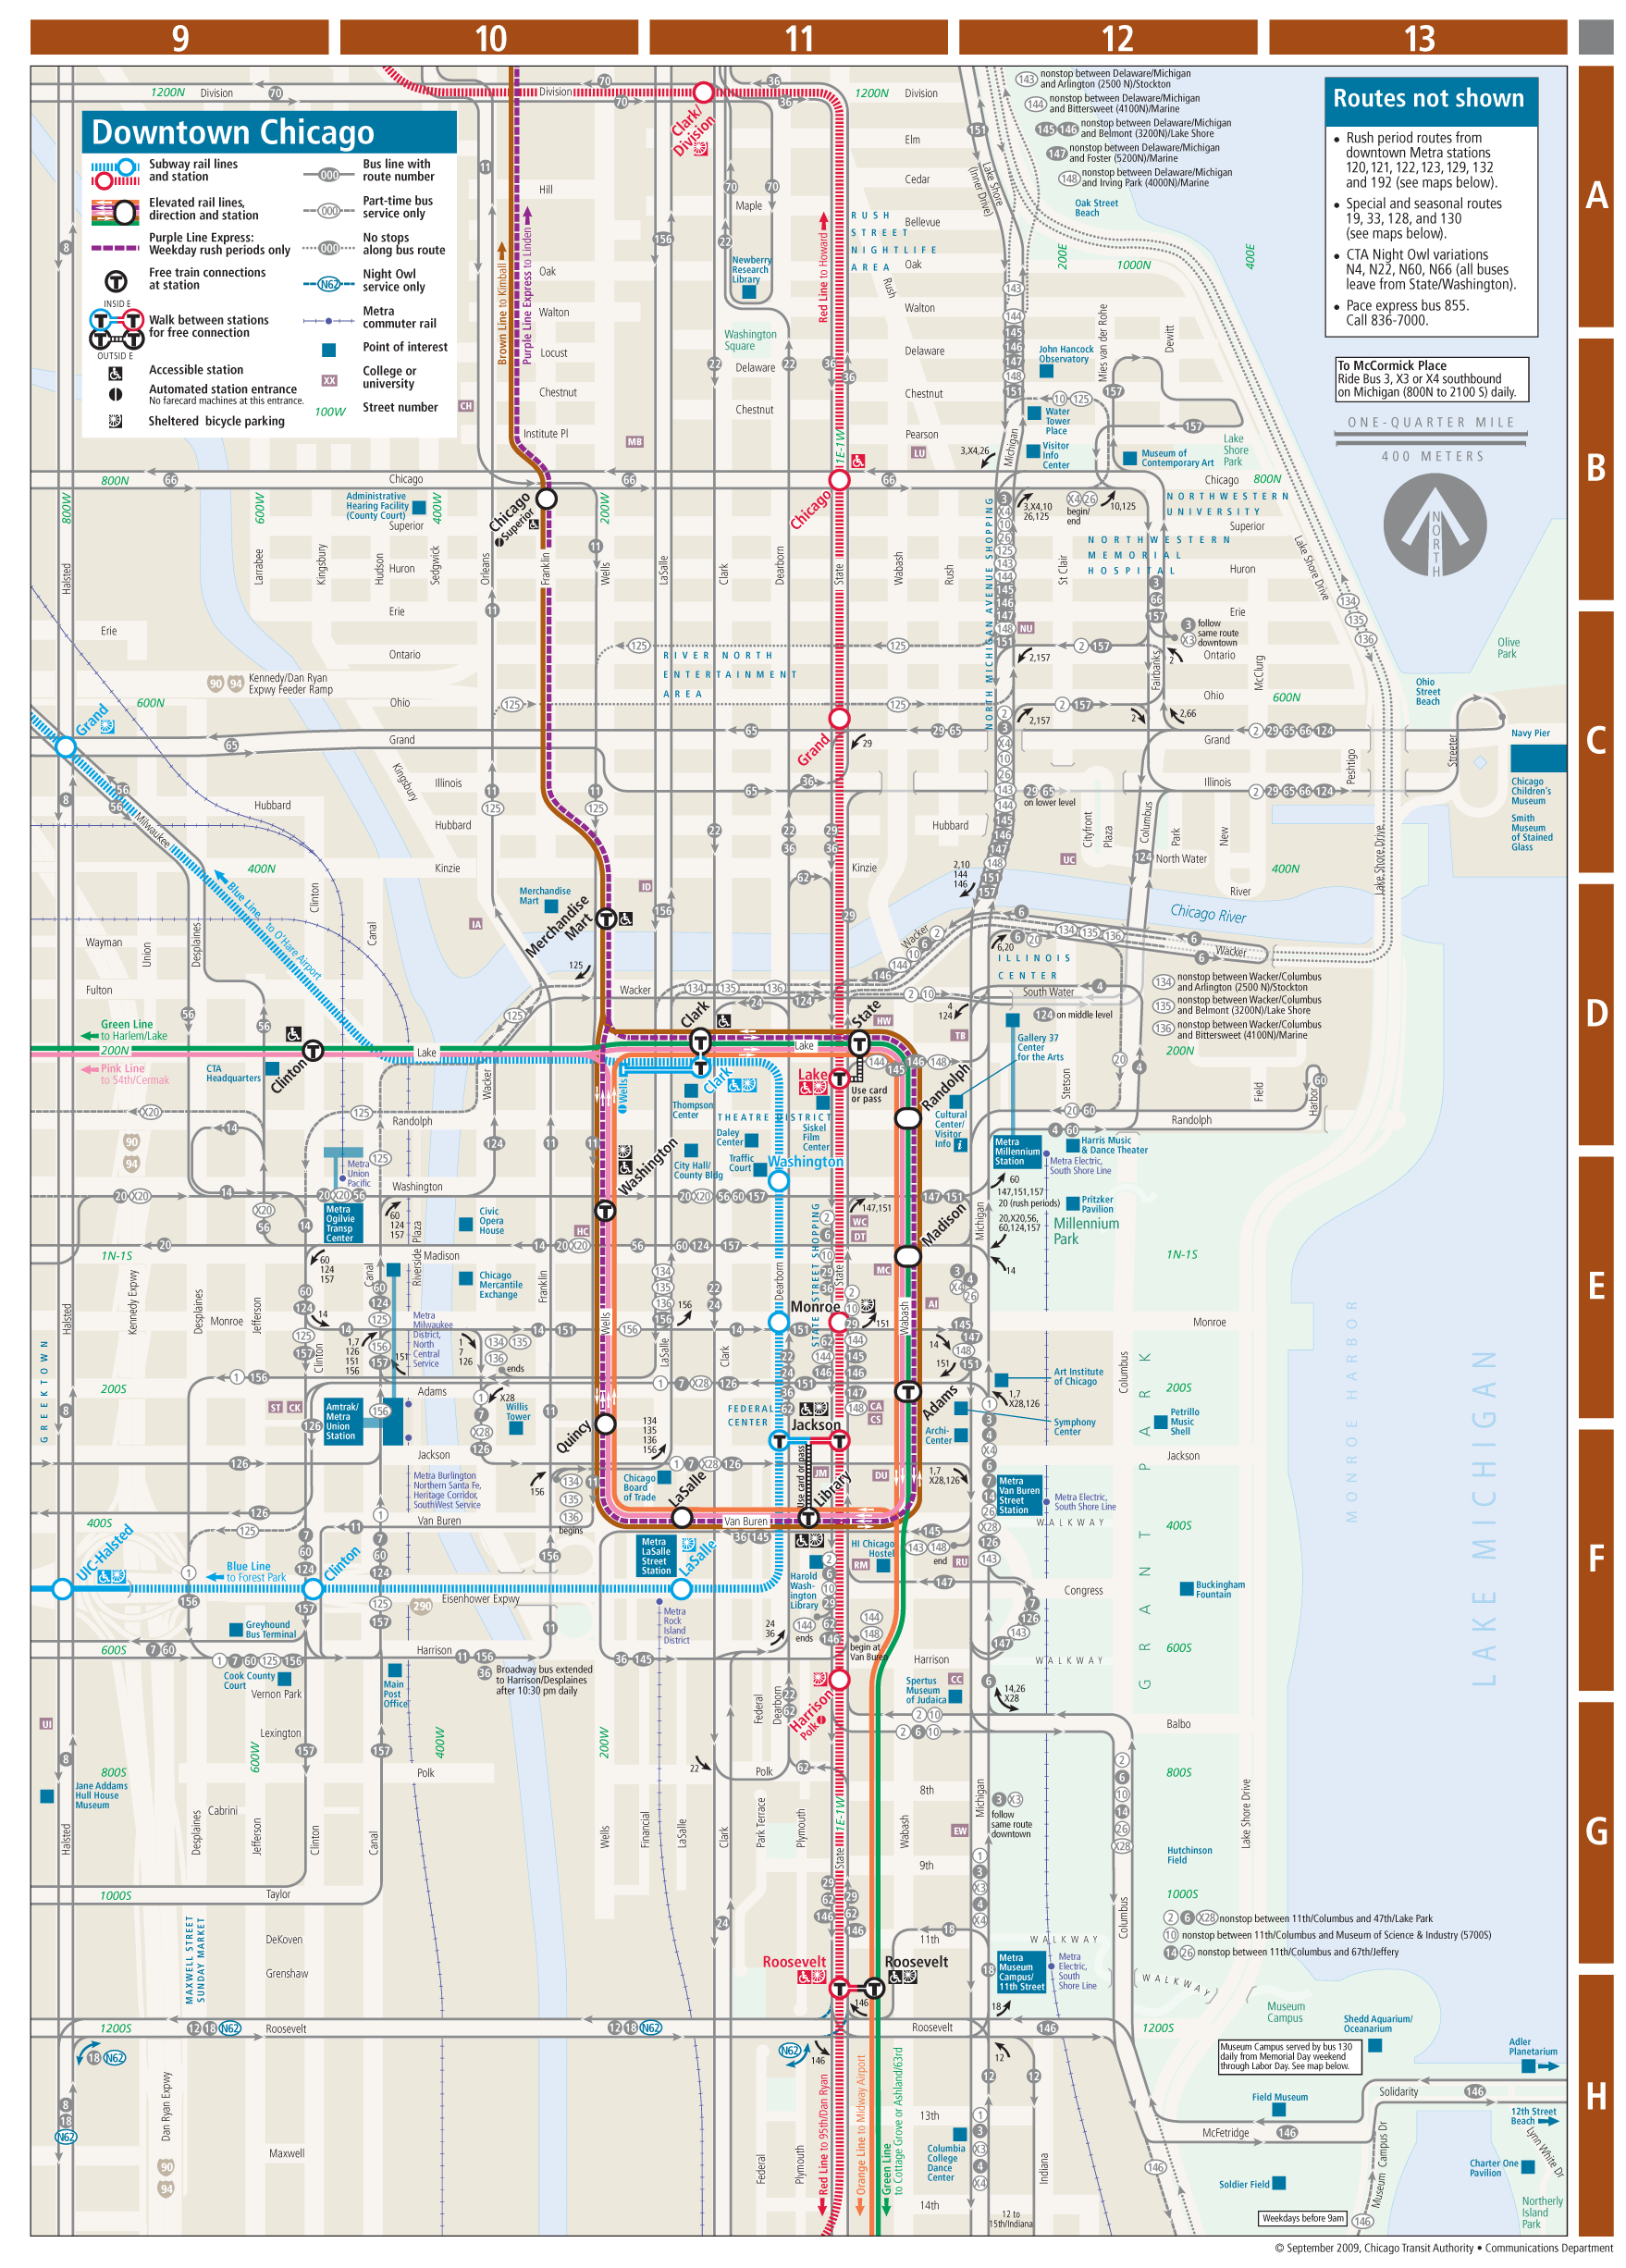 Subway Map Chicao.Chicago Downtown Metro System Map Mapsof Net